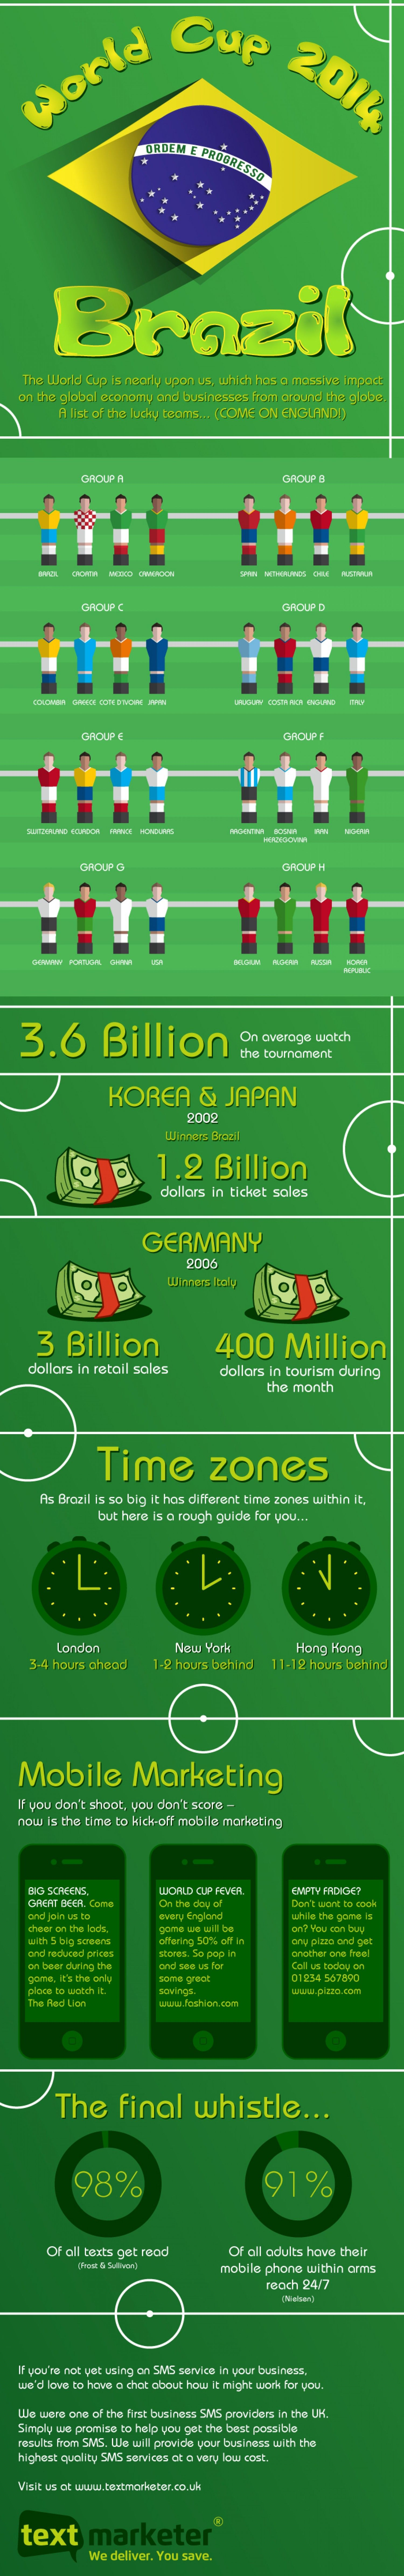 The Global Impact Of Fifa World Cup 2014 This Info Graphic Displays The Number Of Estimate Worldwide Viewers Tou World Cup World Cup 2014 Fifa 2014 World Cup